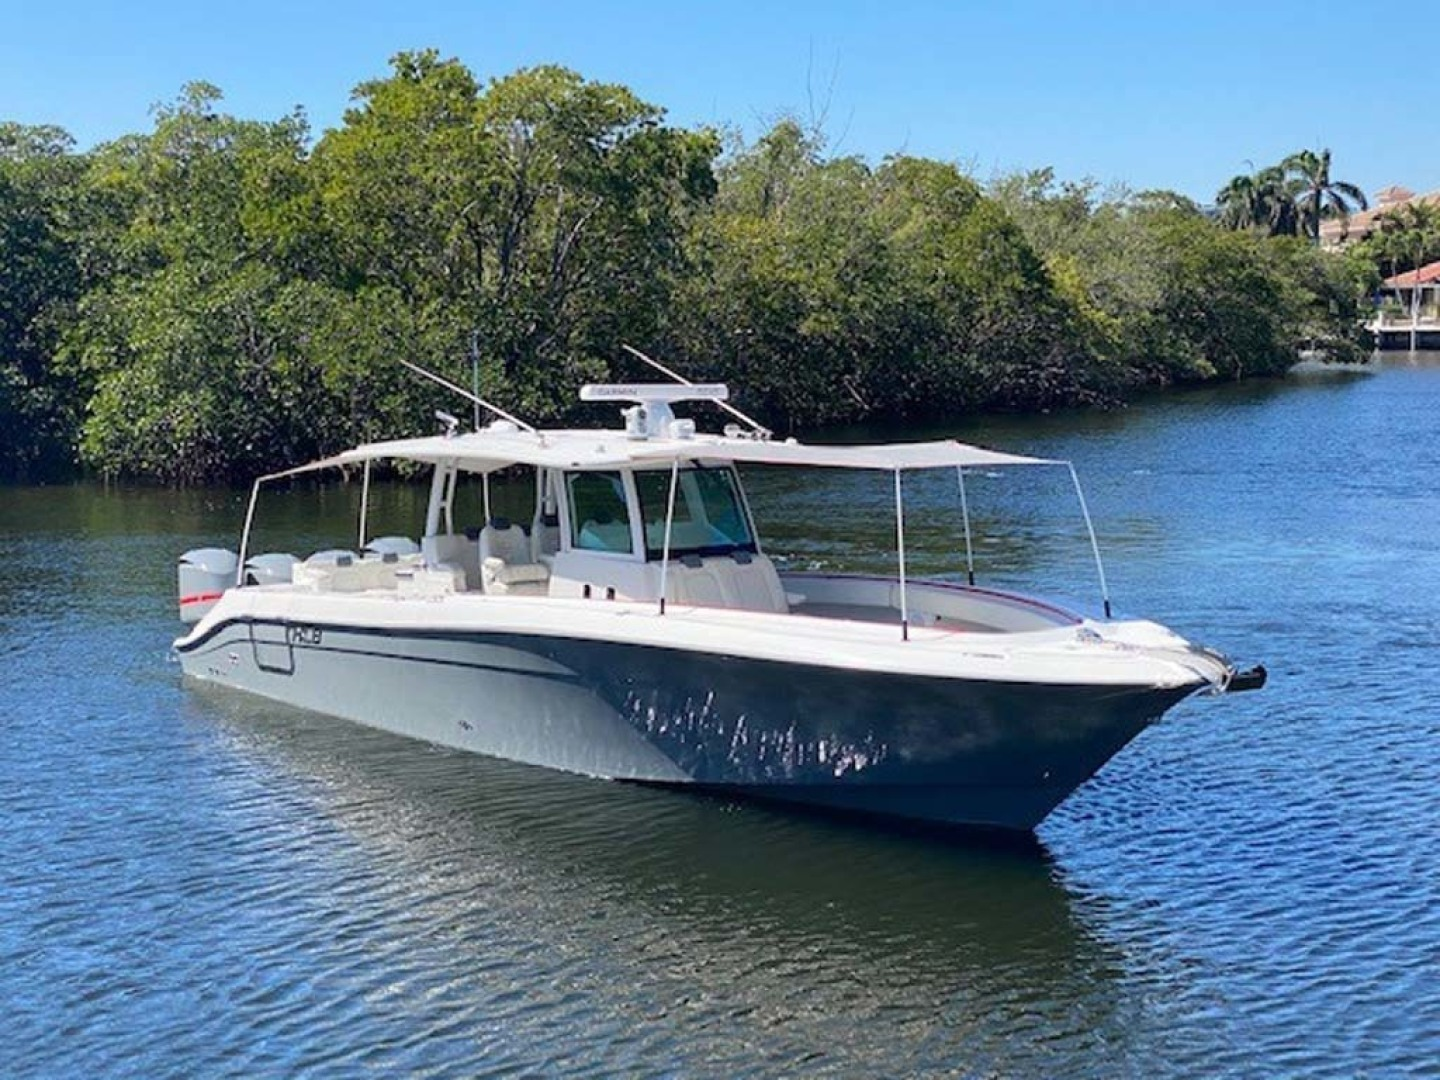 Hydra-Sports-Siesta Edition HCB 2019-Not Fishing II Boca Raton-Florida-United States-Complete Front And Rear Canopy Covers-1348436   Thumbnail